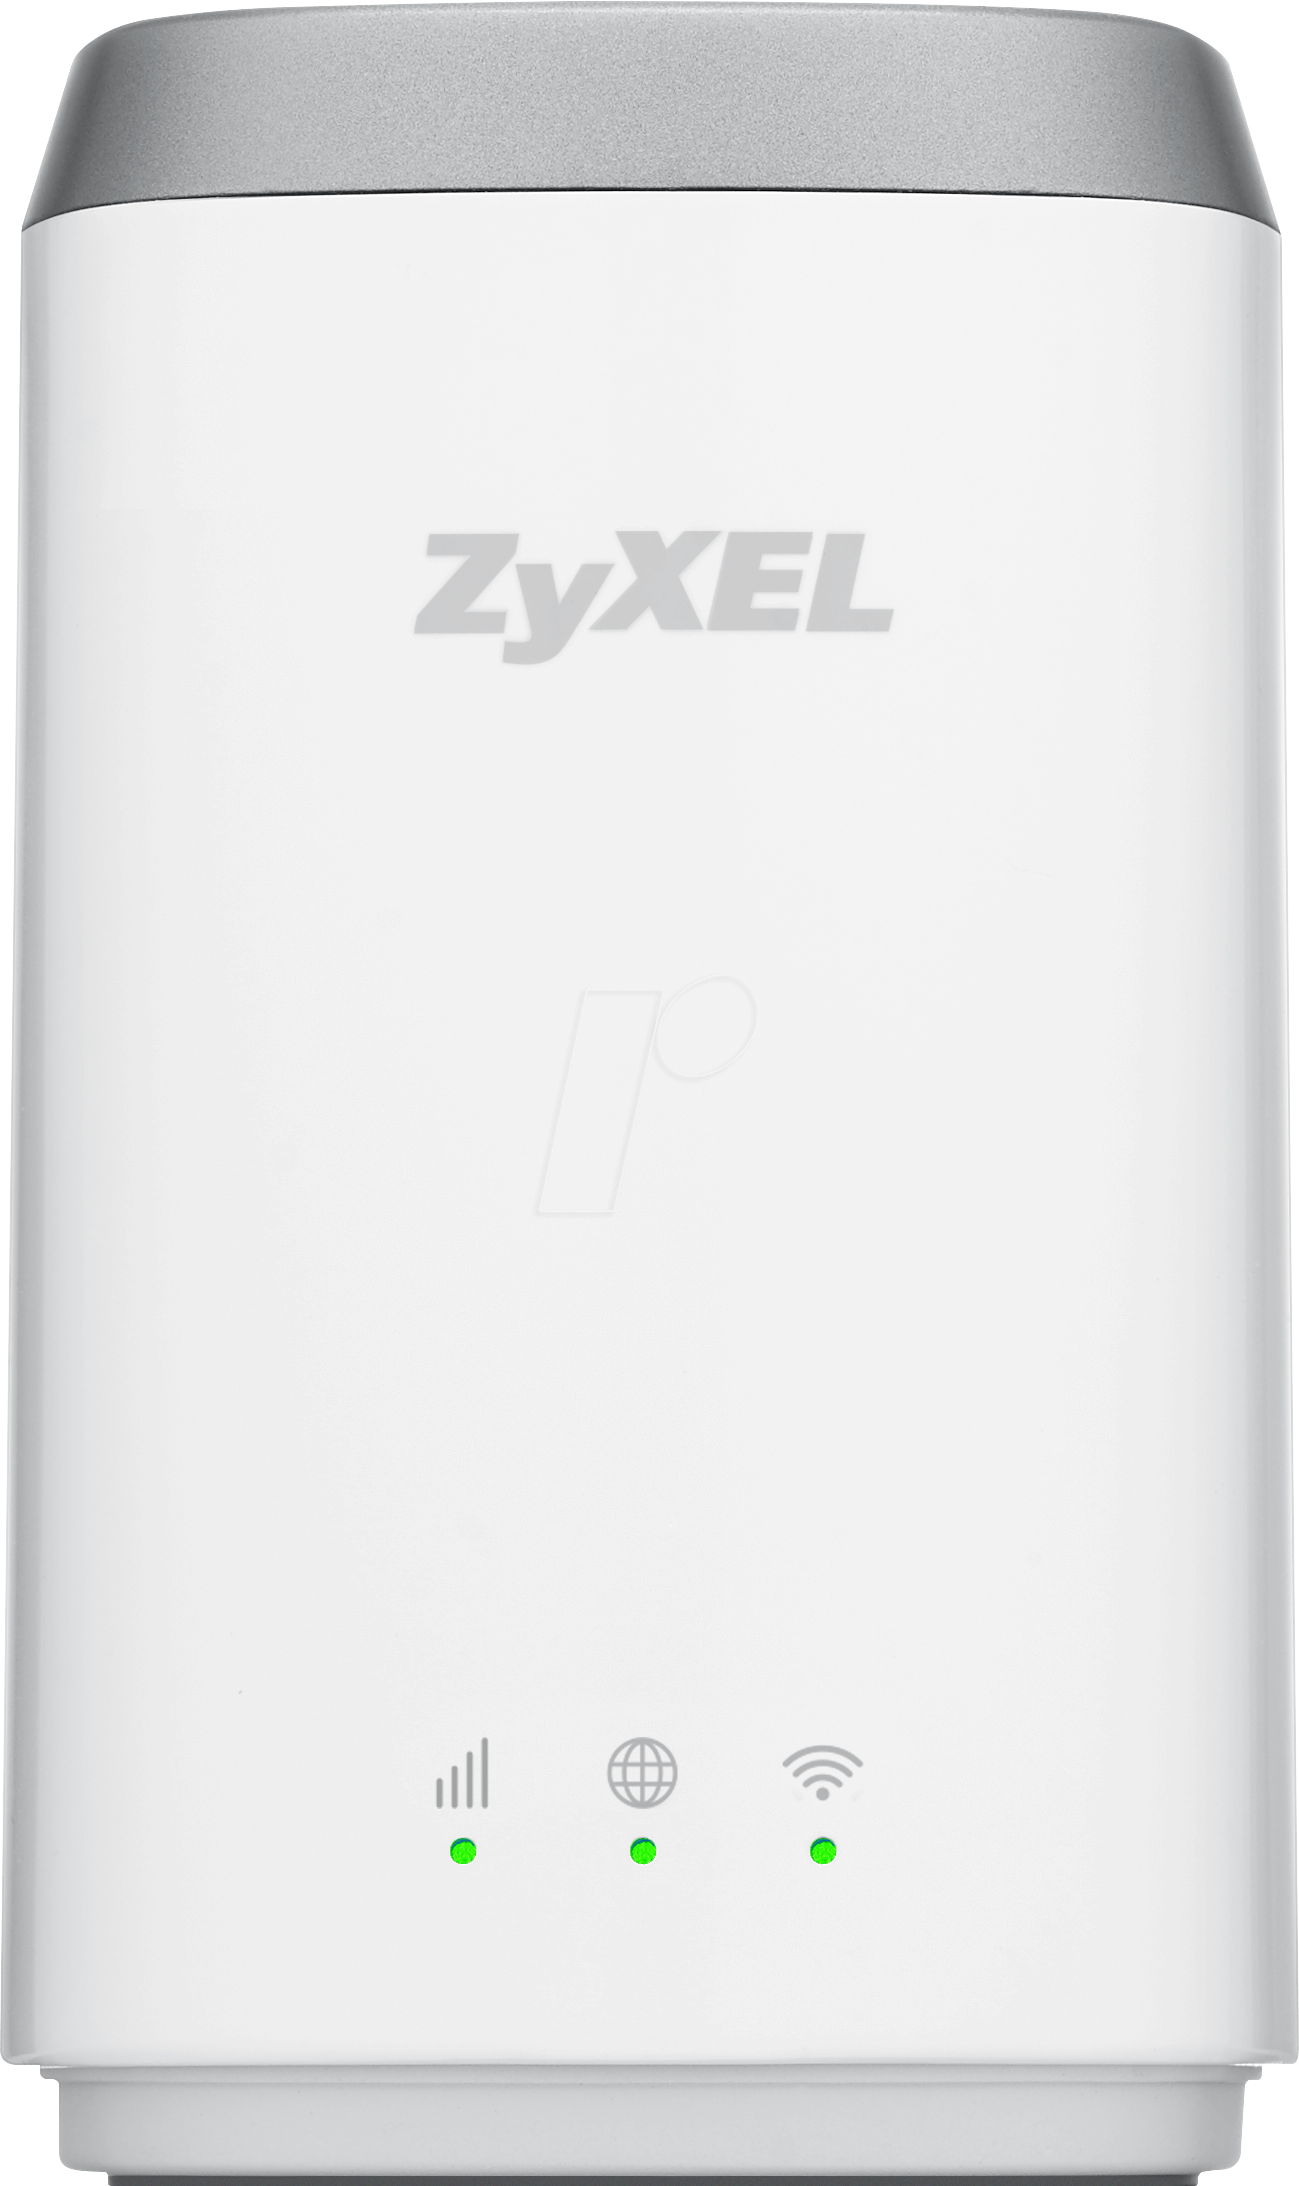 zyxel lte4506 wlan router 4g lte a 2 4 5 ghz 300 mbit. Black Bedroom Furniture Sets. Home Design Ideas